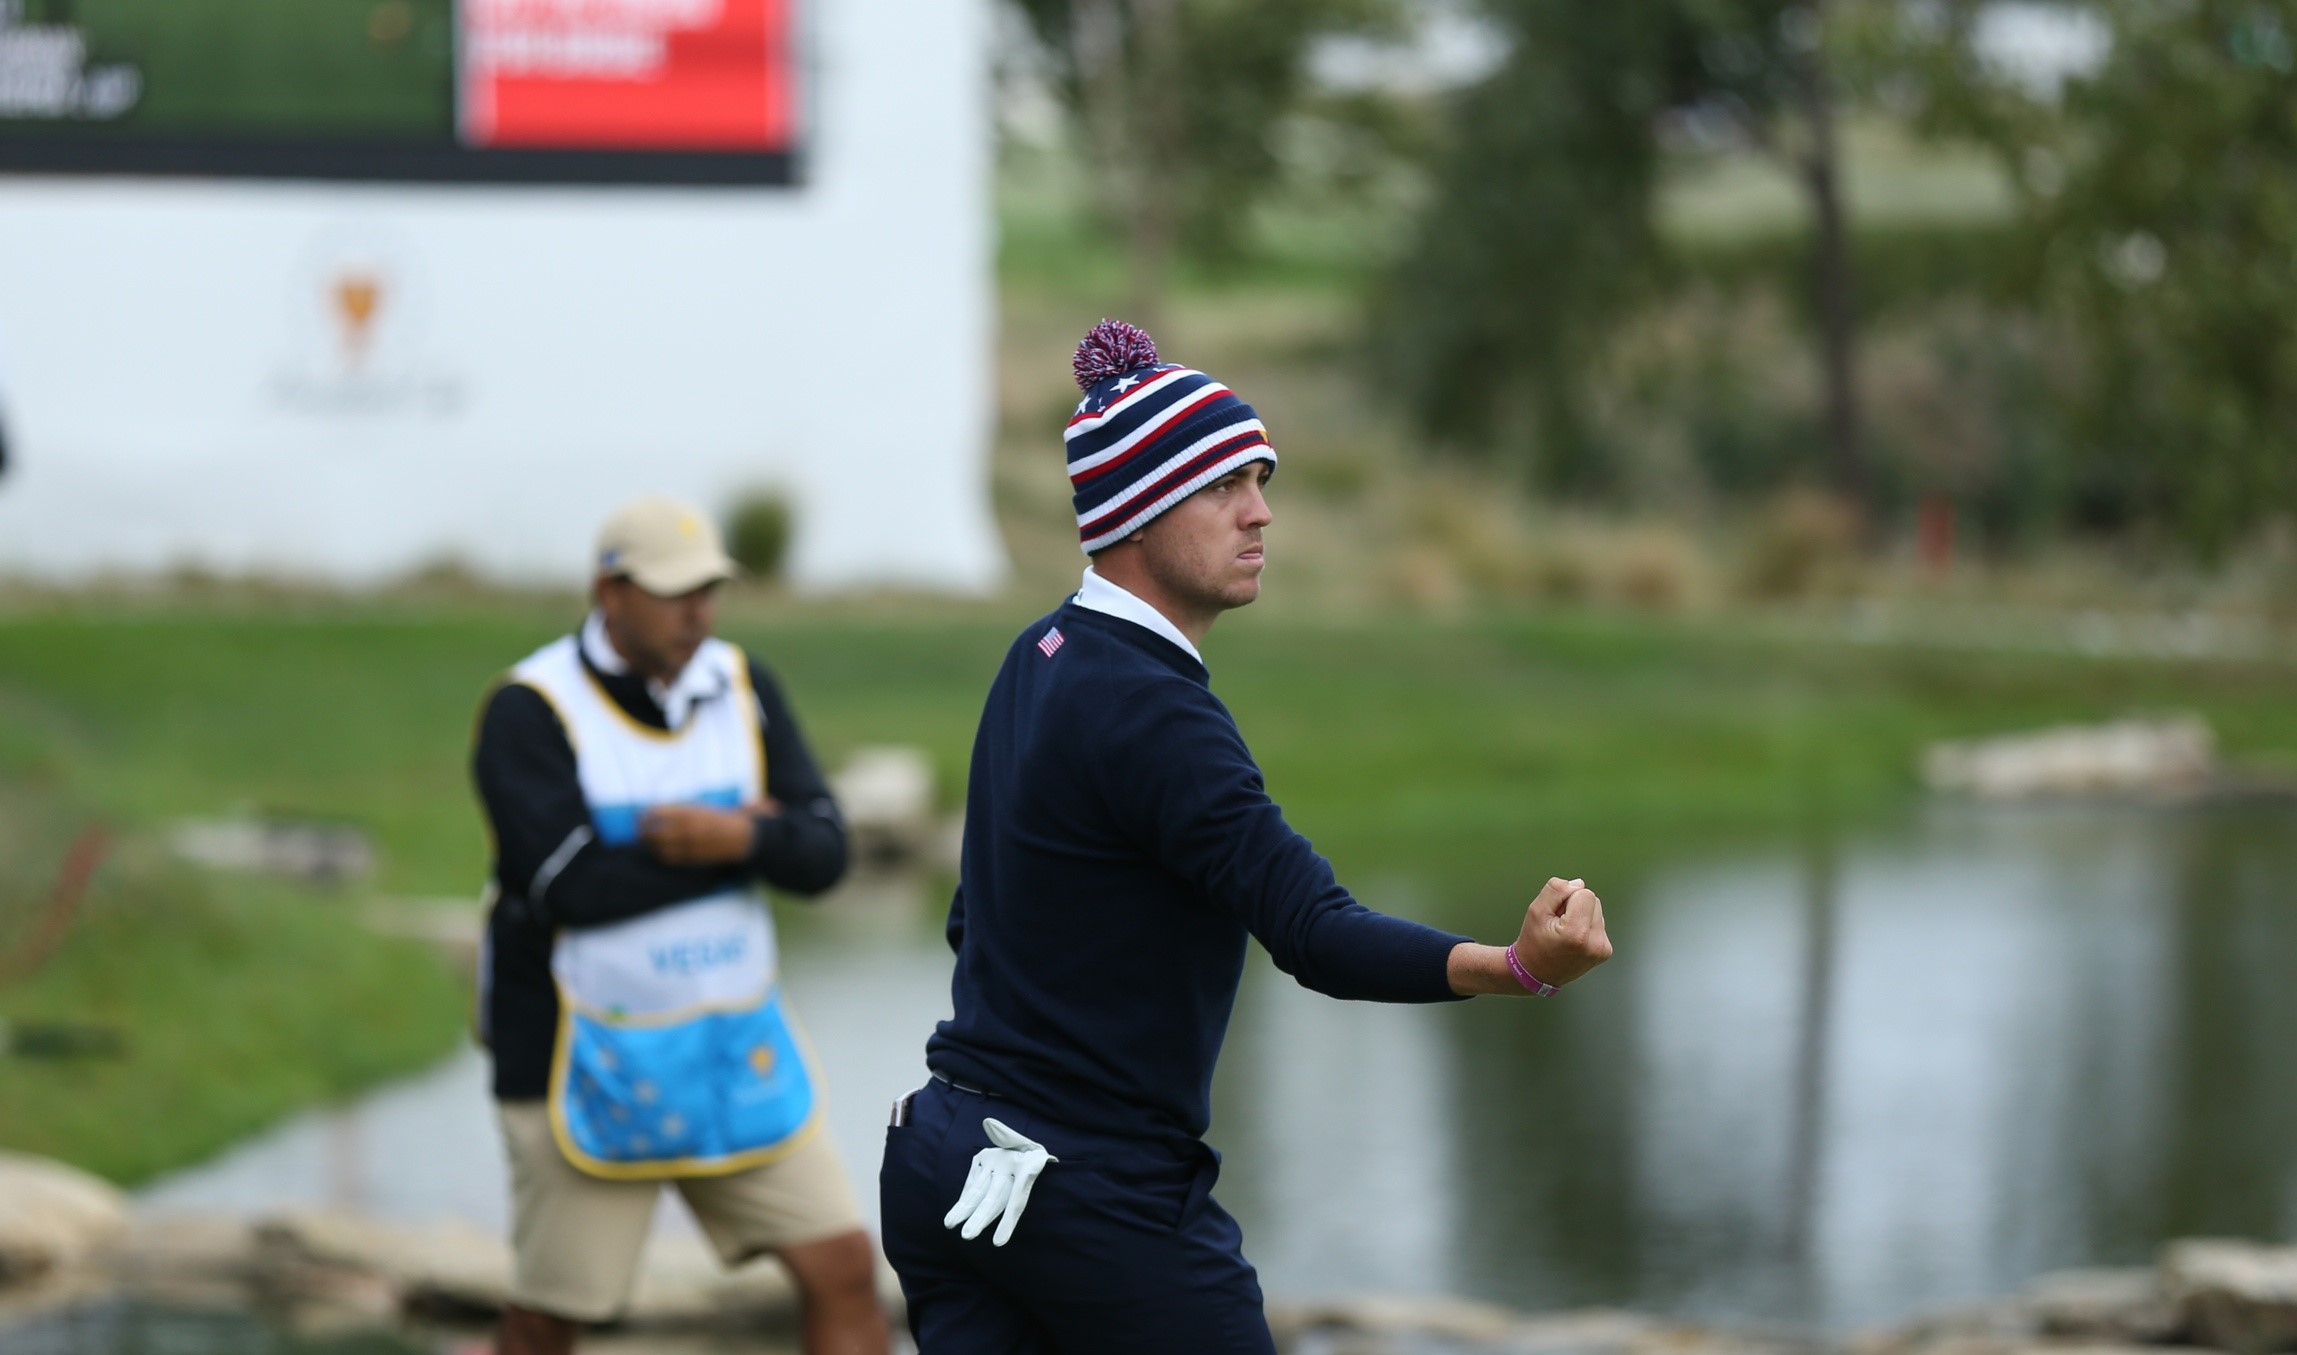 CJ Cup: Thomas back on top after more difficult conditions article feature image